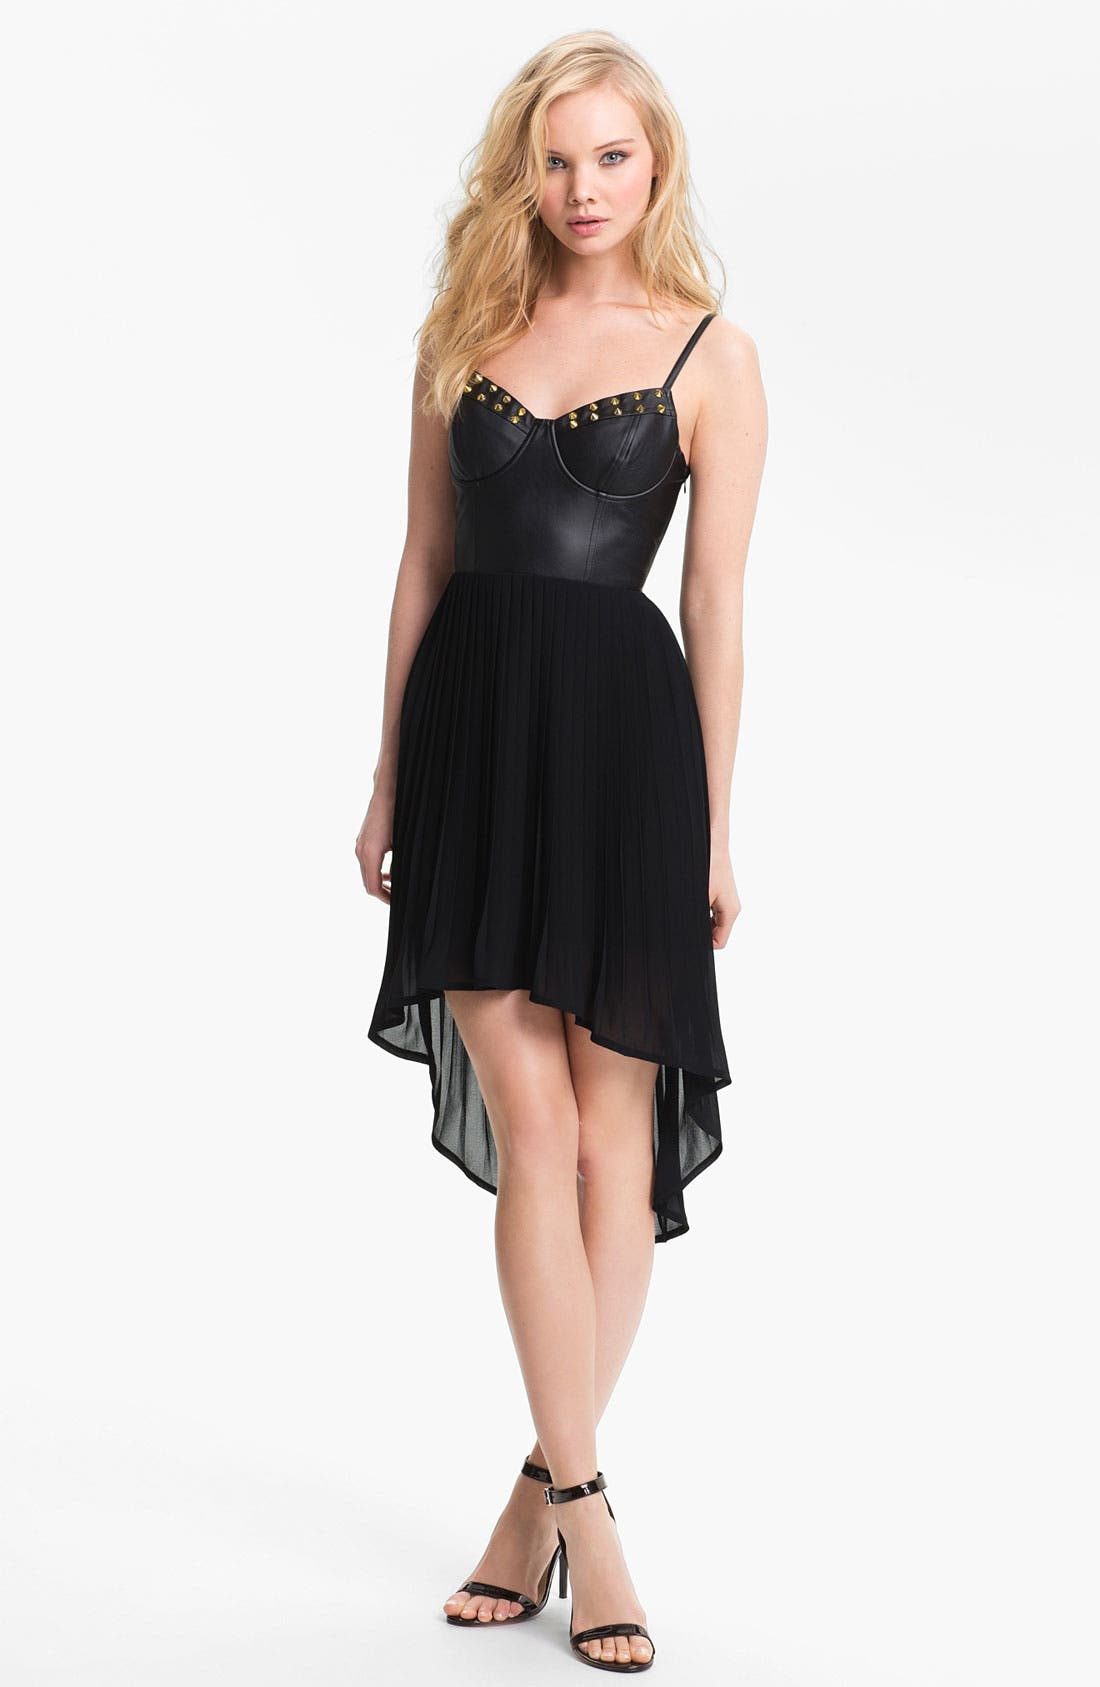 Alternate Image 1 Selected - Lush Studded Faux Leather Bustier Dress (Juniors)